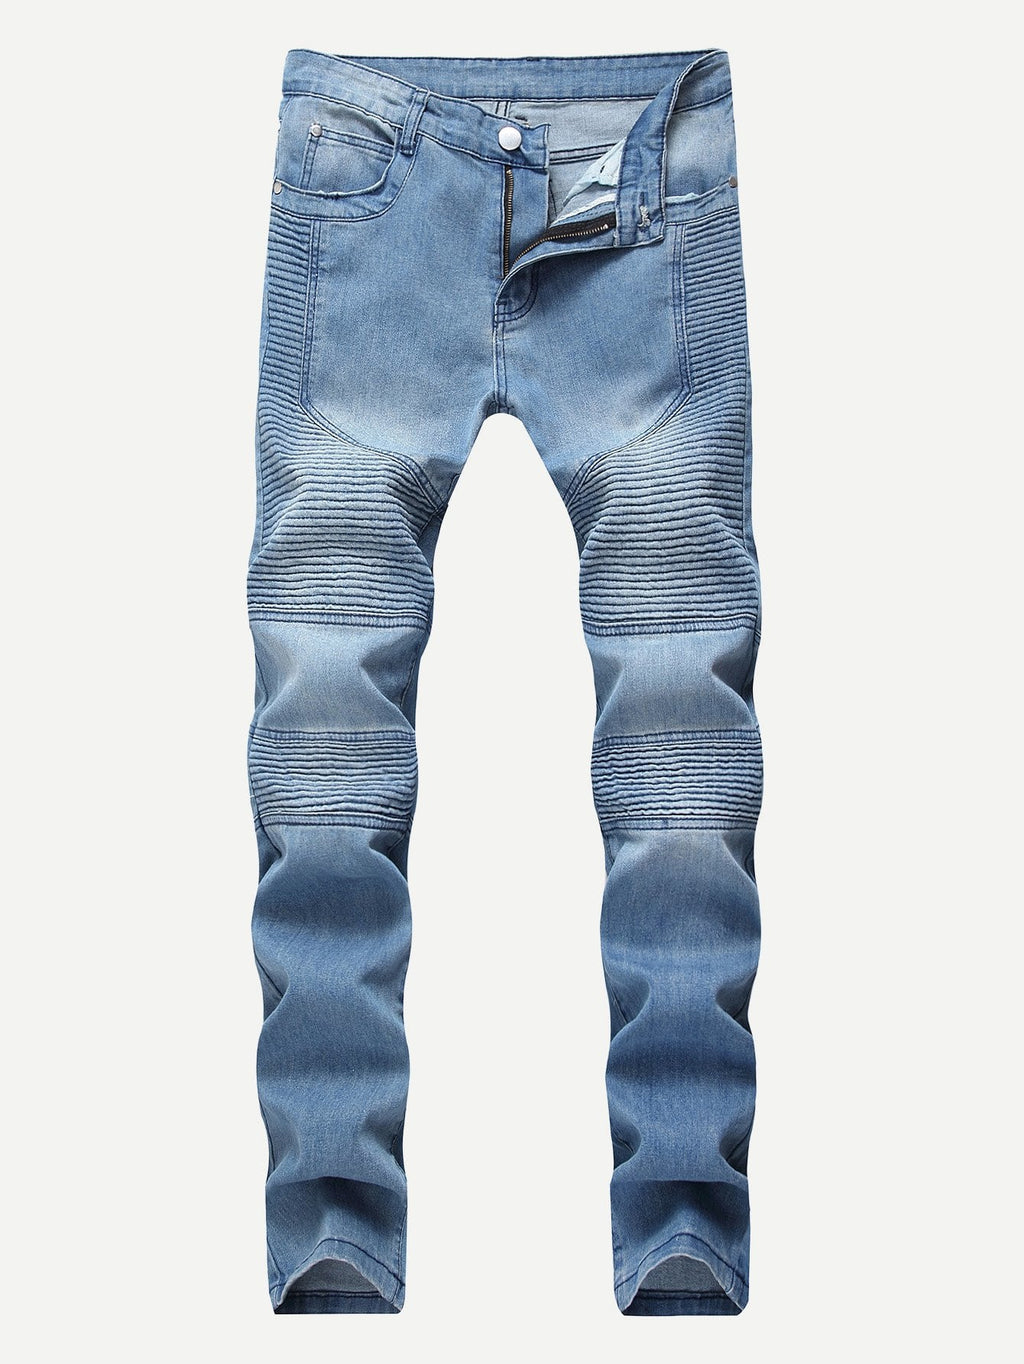 Denim Jeans - Men Washed Locomotive Pleats Jeans